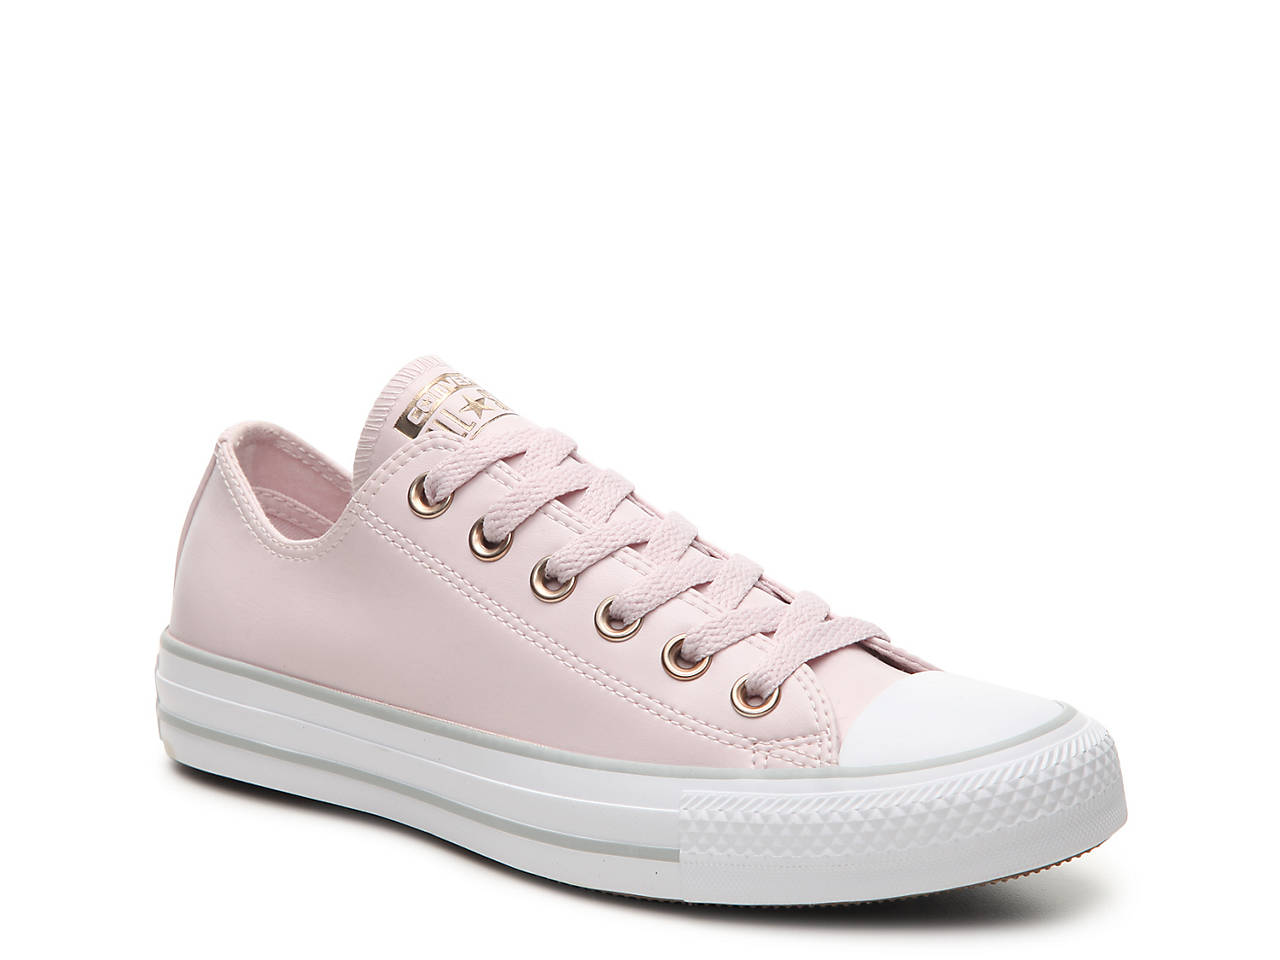 3113a2f61d5aa Converse Chuck Taylor All Star Ox Sneaker - Women s Women s Shoes